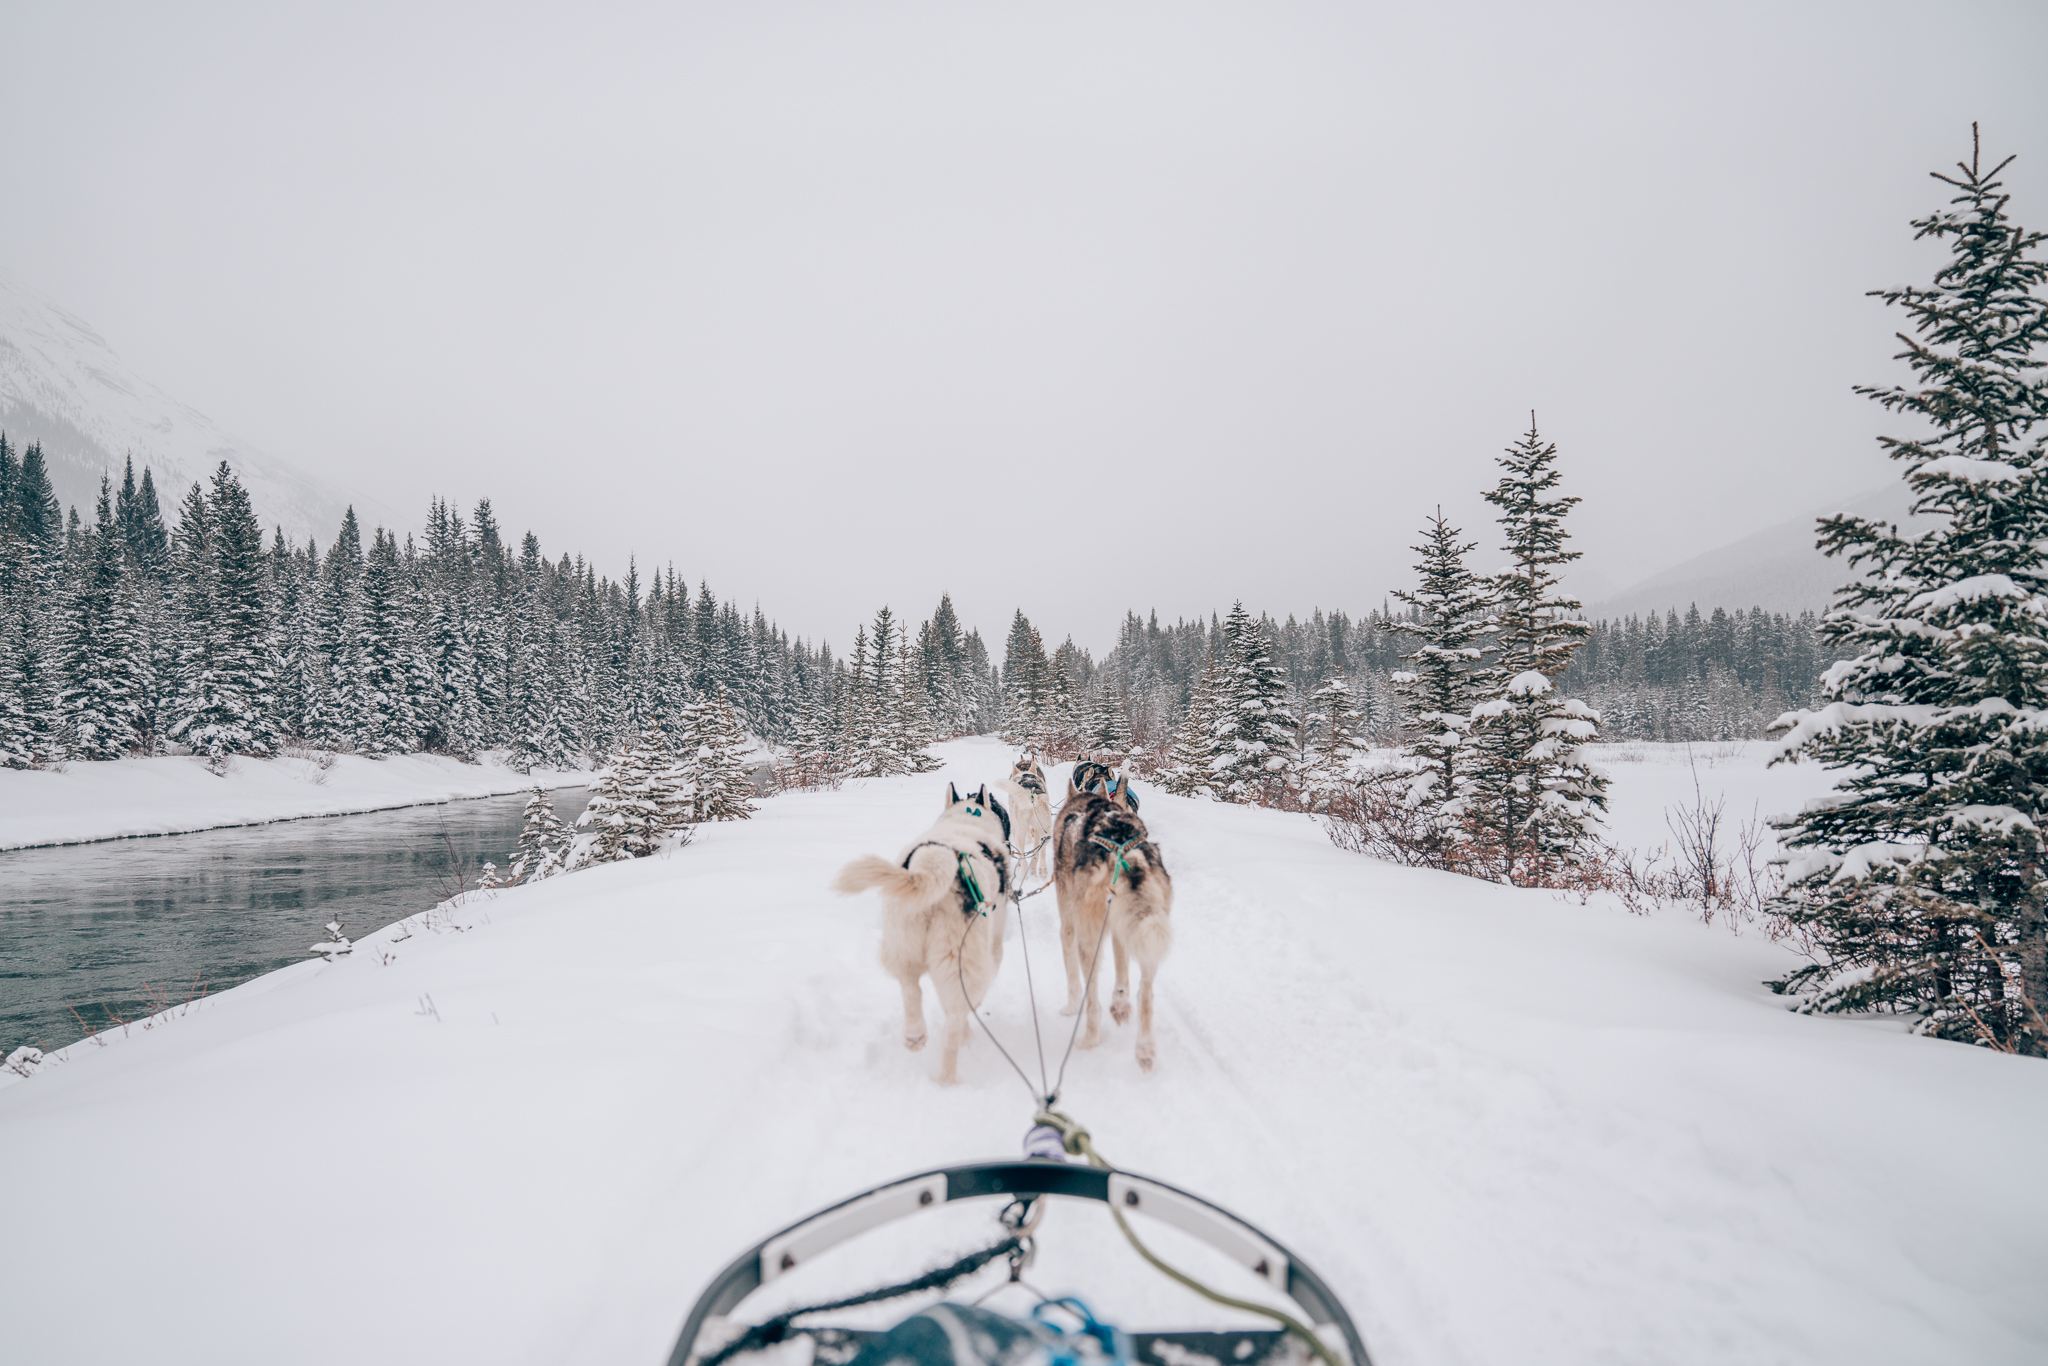 How To Book a Dog Sledding Tour in Banff, Canada